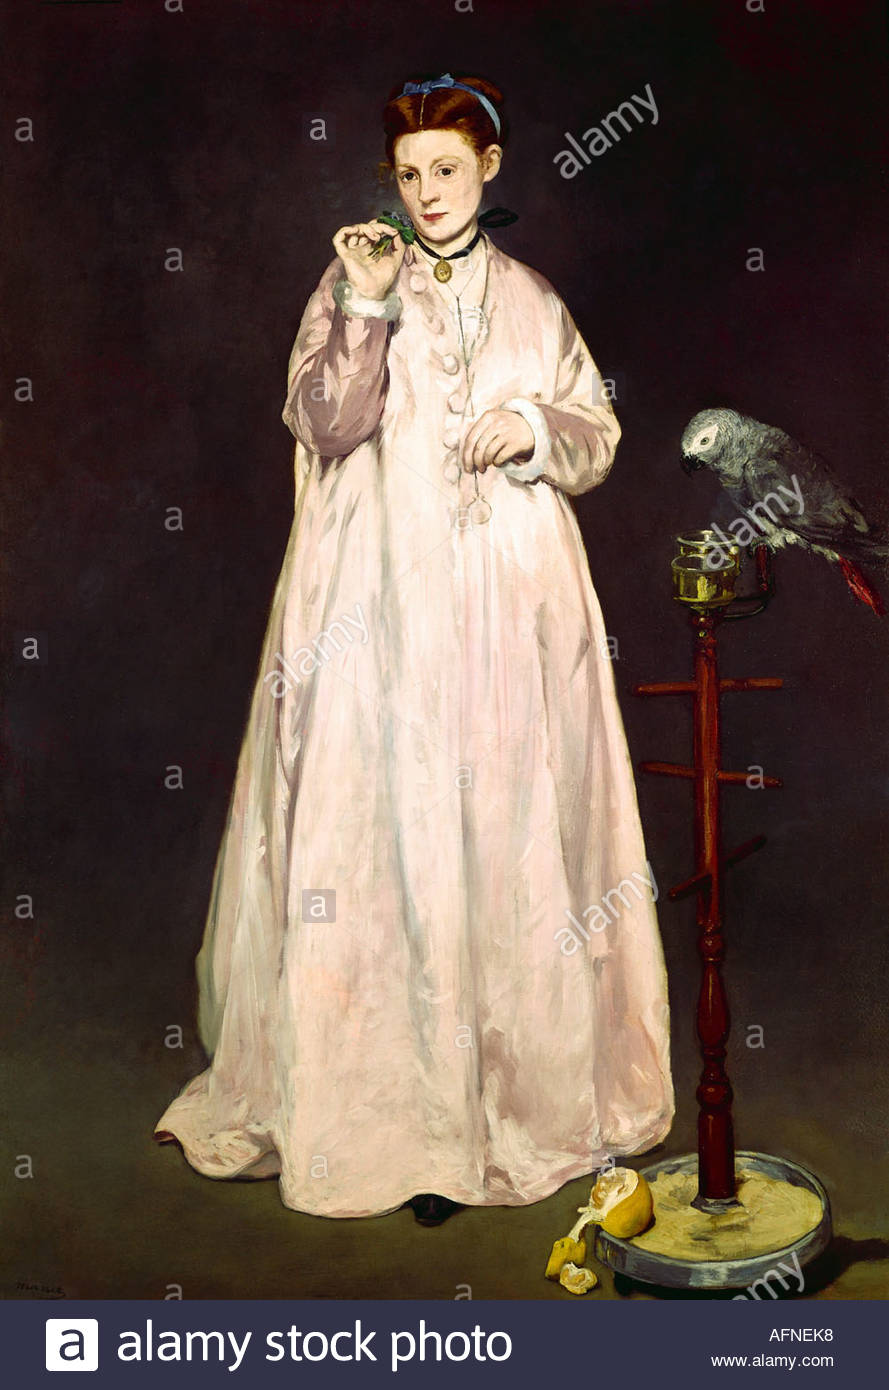 'fine arts, Manet, Edouard, (1832 - 1883), painting, 'La Femme au Perroquet', ('woman with a parrot'), - Stock Image